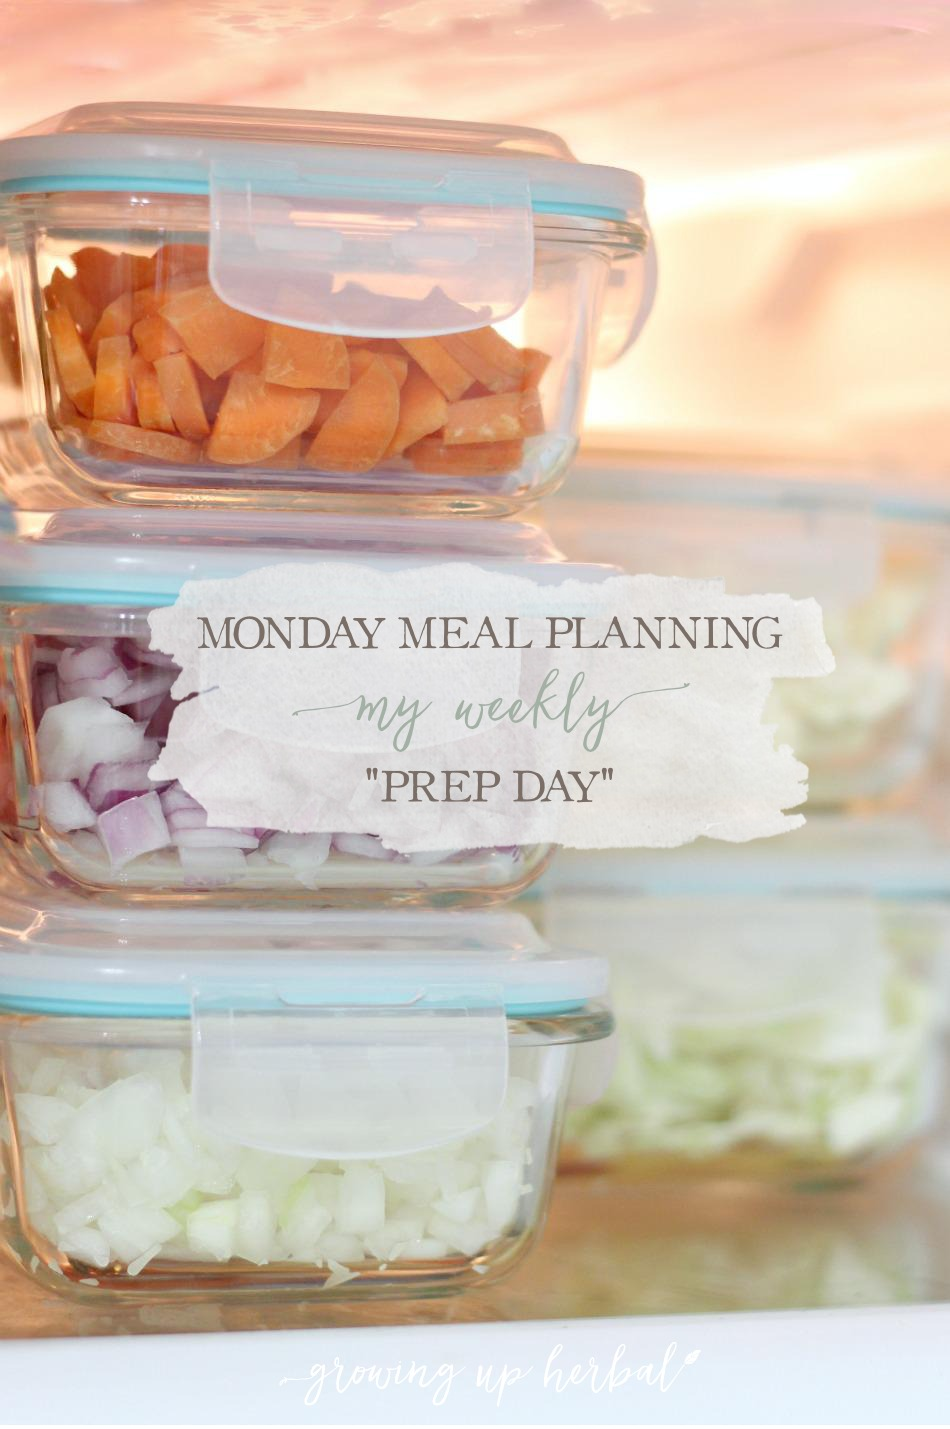 "Meal Planning Monday: My Weekly ""Prep Day"""